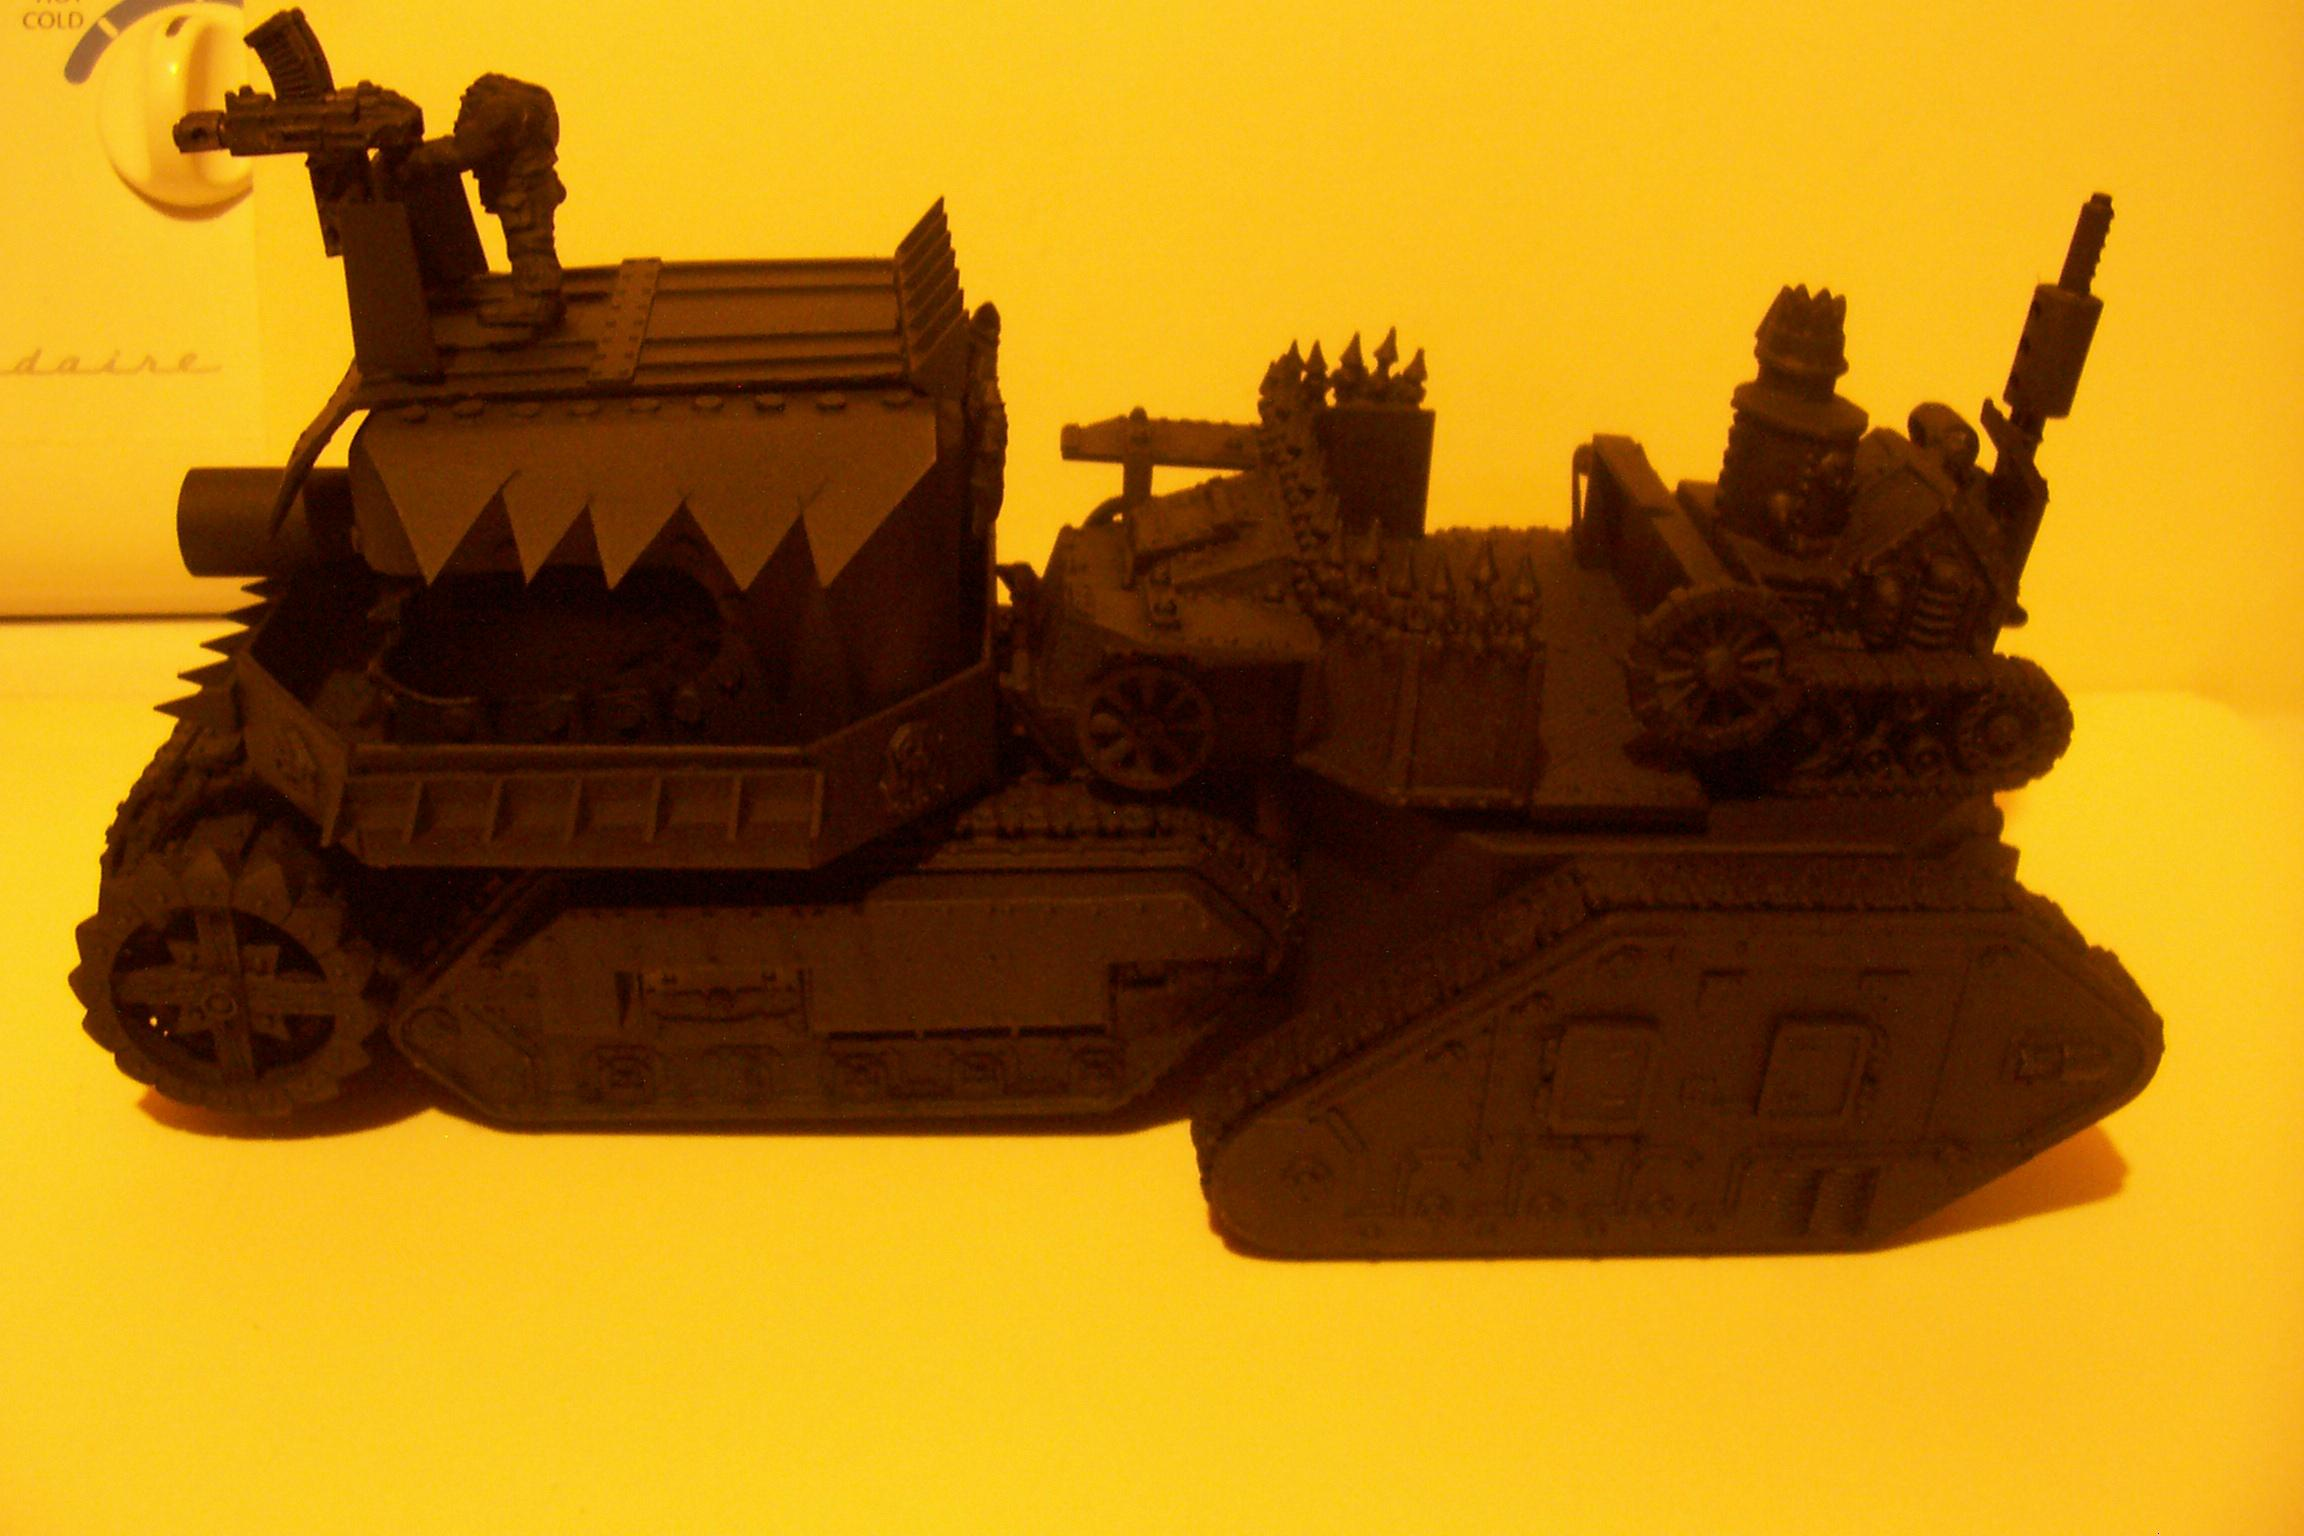 Conversion, Leman Russ, Looted, Orks, Primered, Tank, Vehicle, Warhammer 40,000